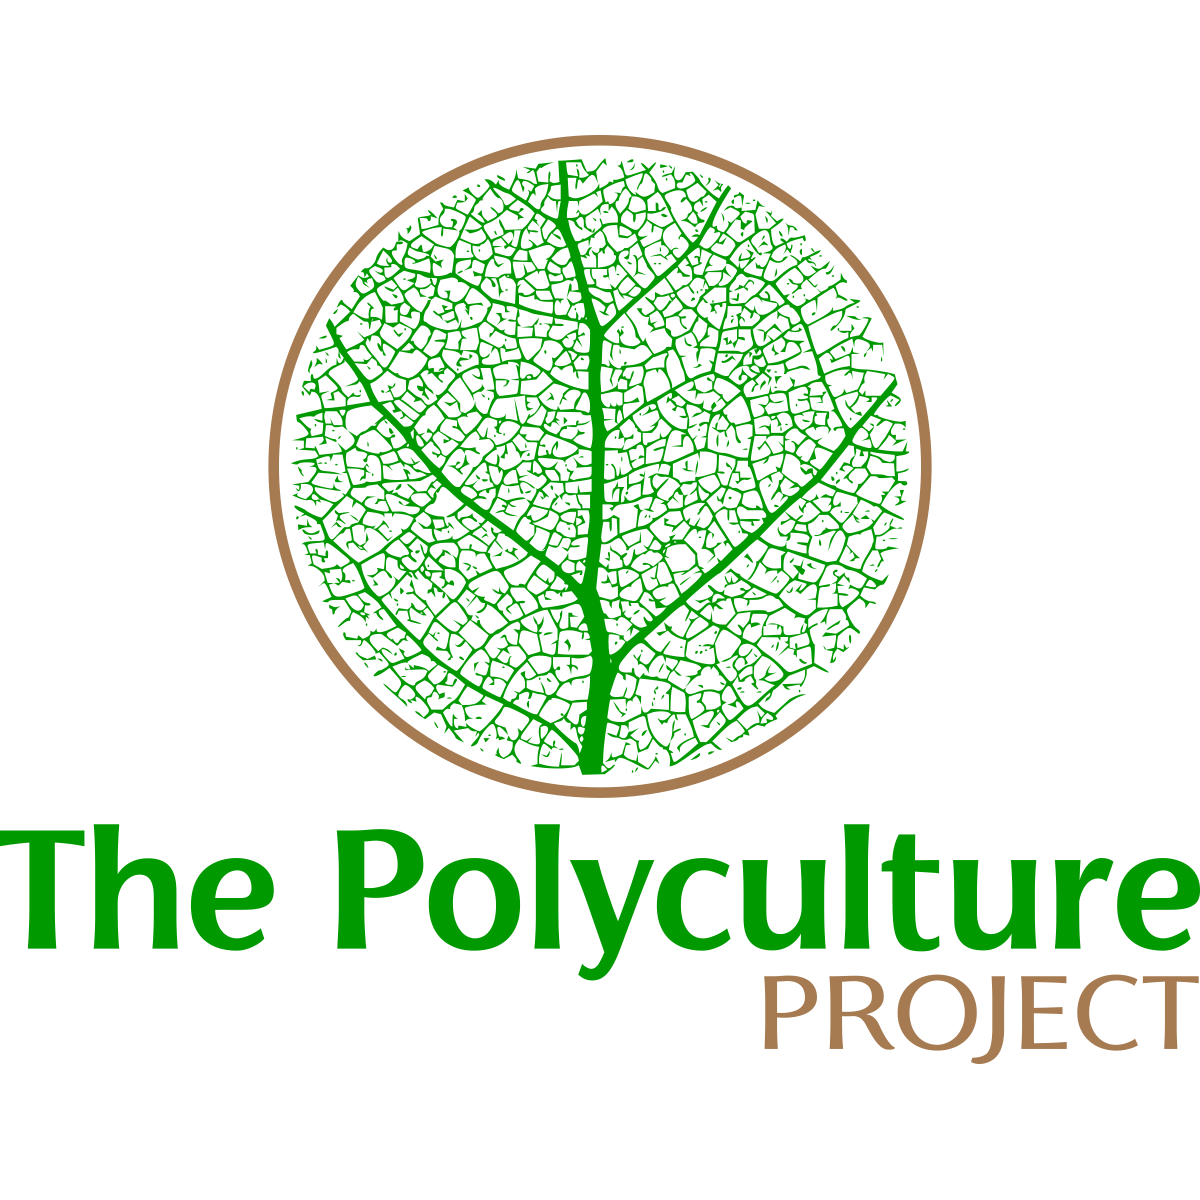 The polyculture project is all about developing and promoting we experiment with various regenerativepermaculture practices and publish our records with aim to supply fandeluxe Image collections